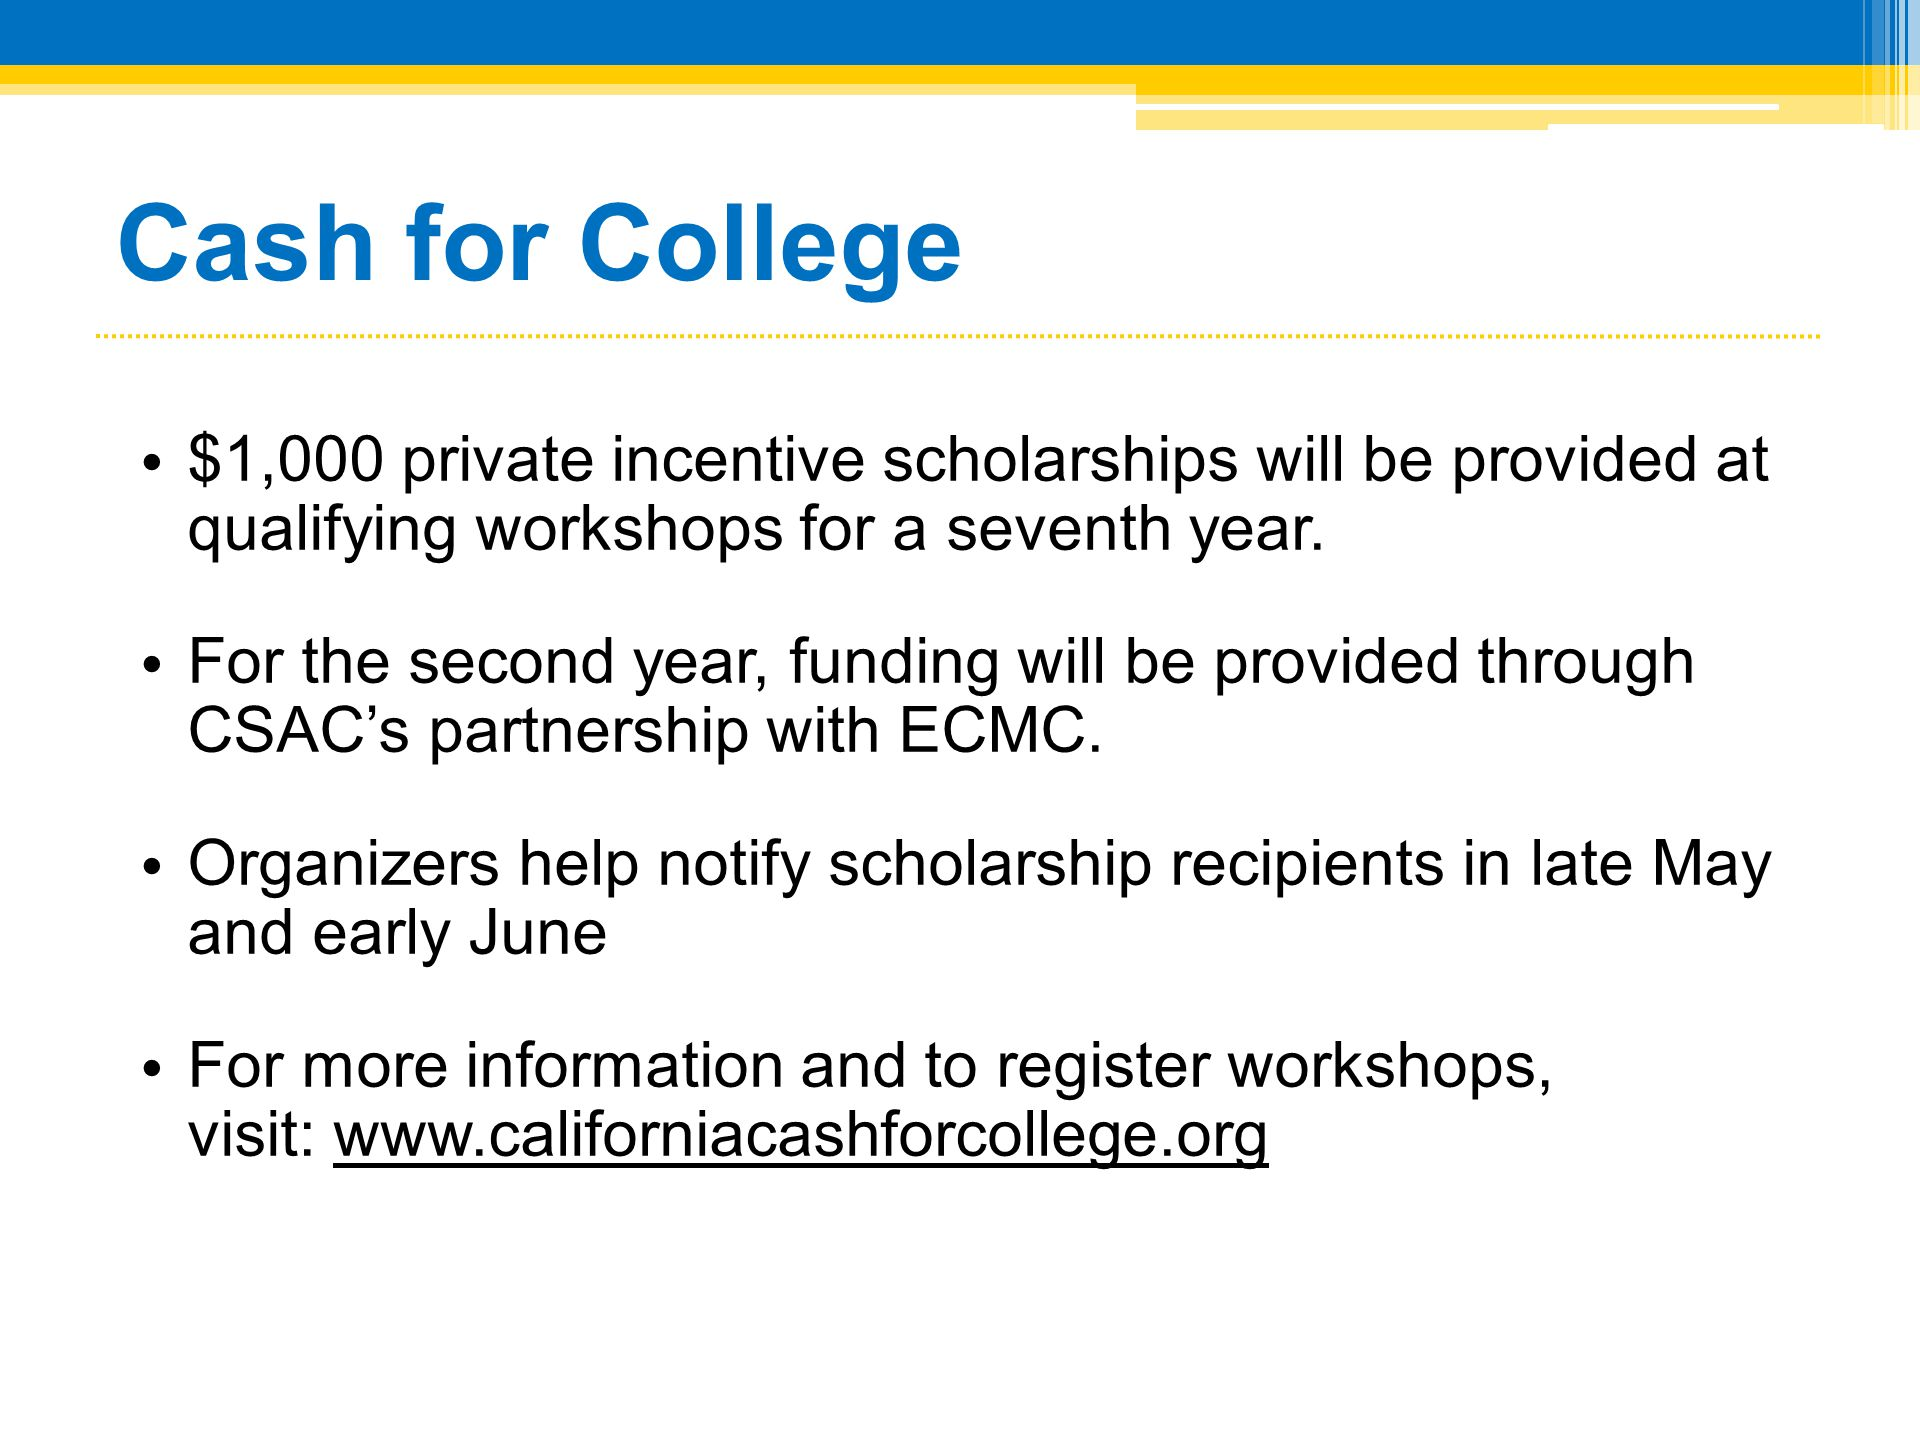 Cash for College $1,000 private incentive scholarships will be provided at qualifying workshops for a seventh year.